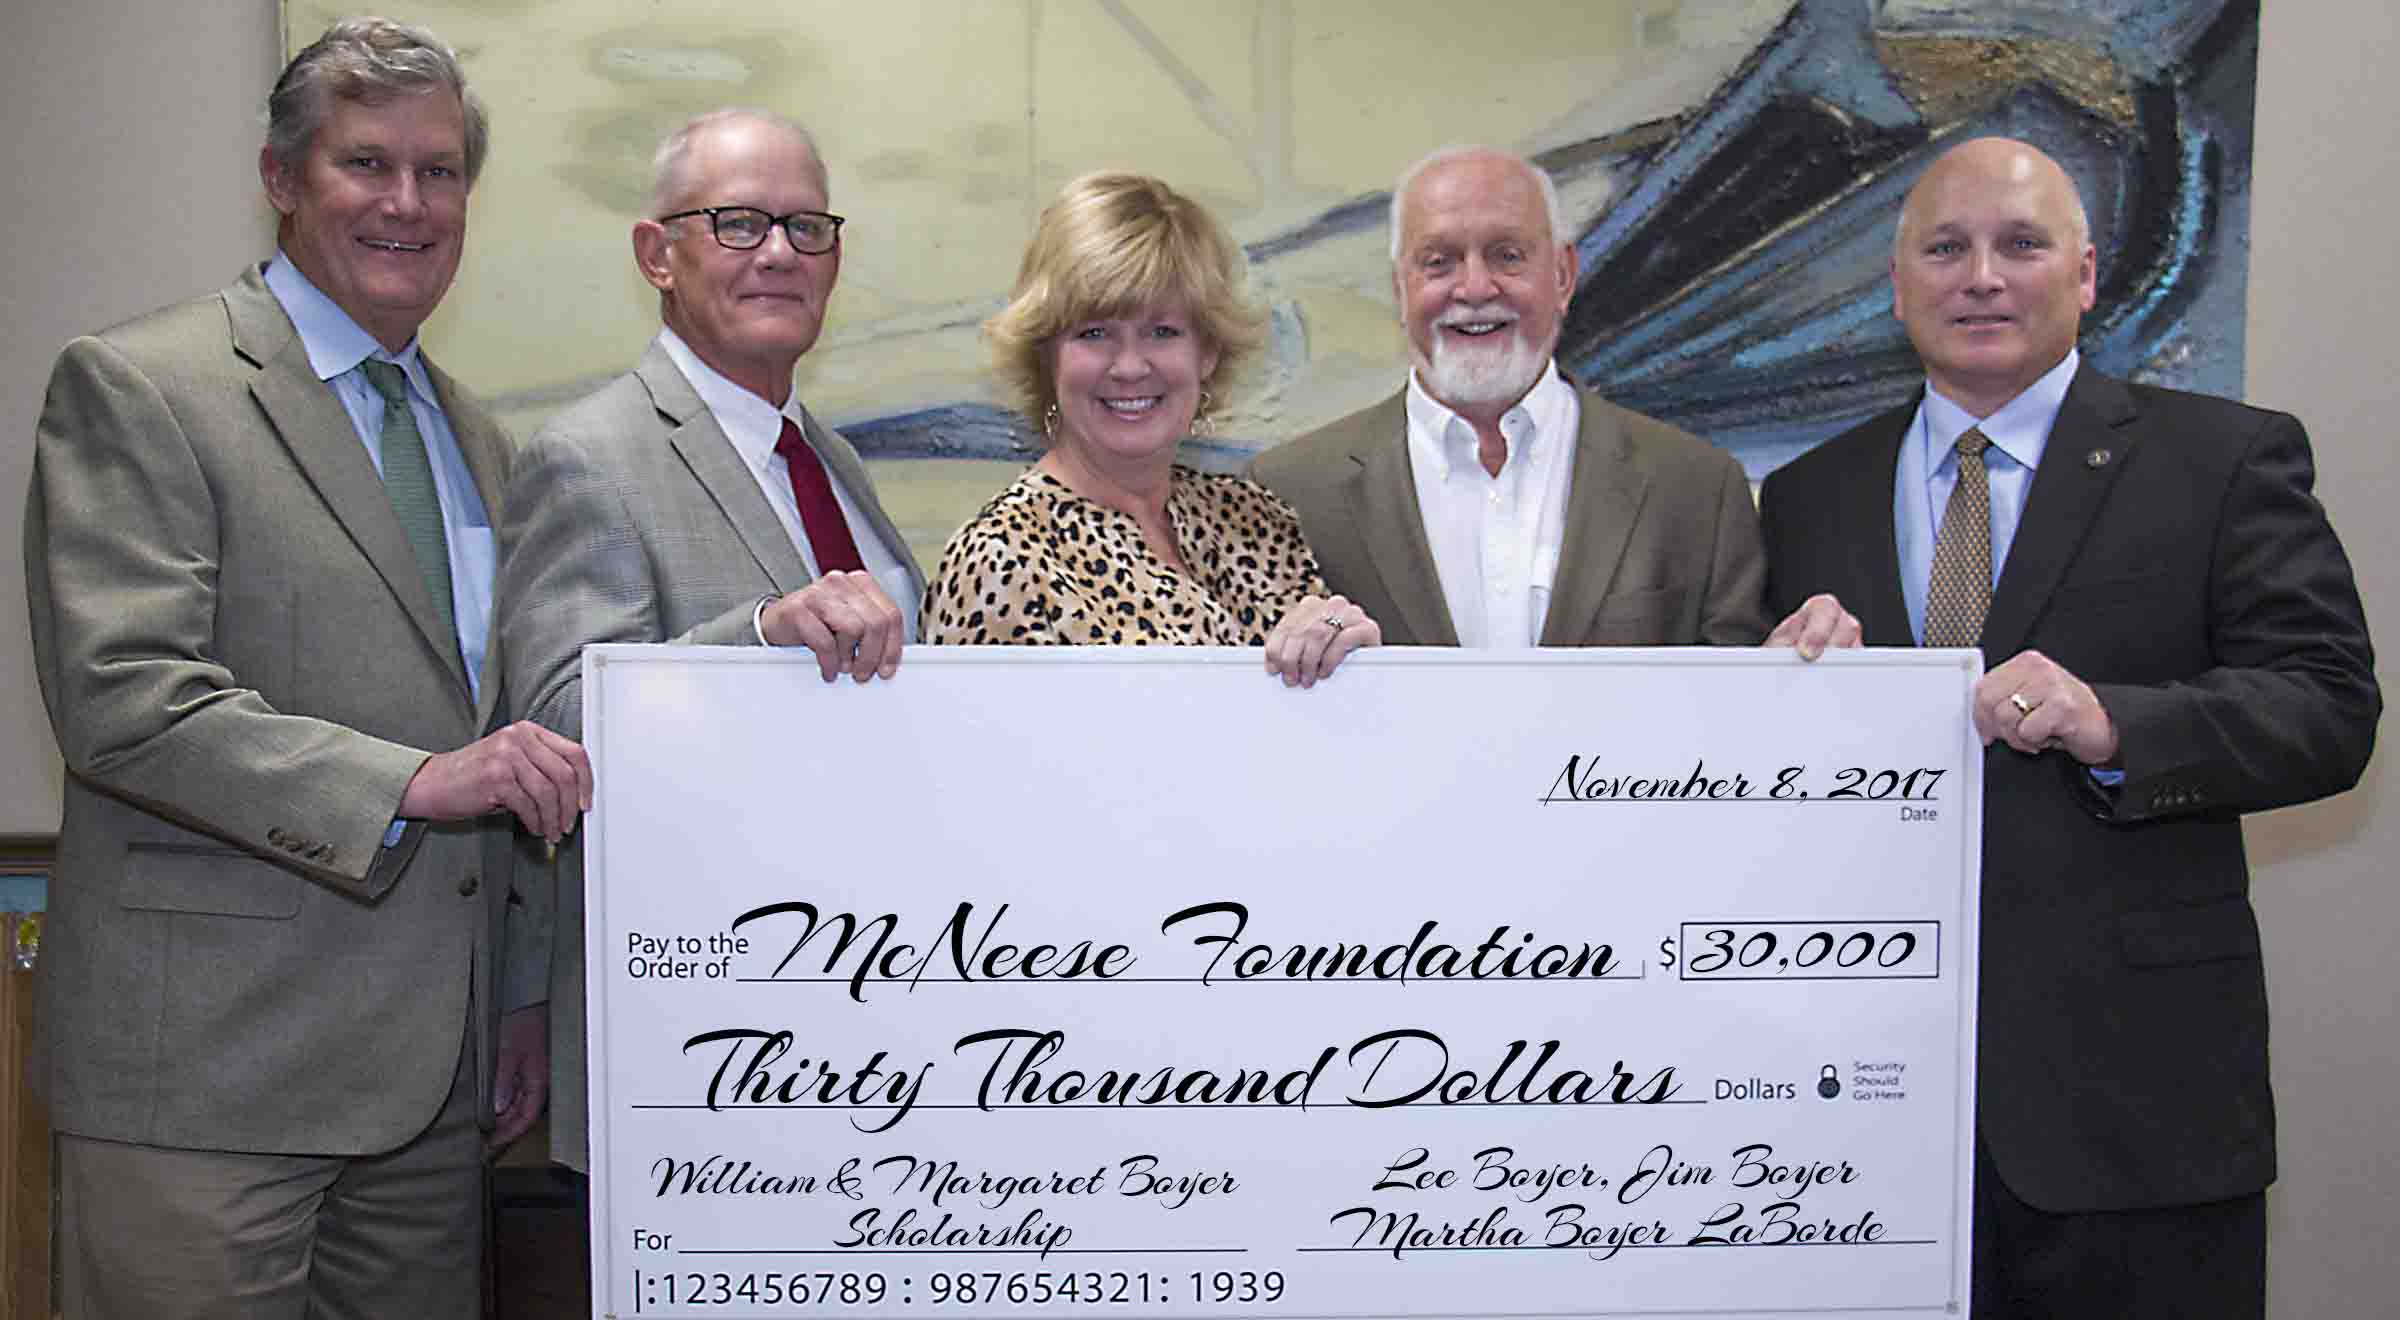 Lee and Jim Boyer with Martha Boyer LaBorde present a check to Richard Reid and Dr. Daryl Burckel of McNeese.